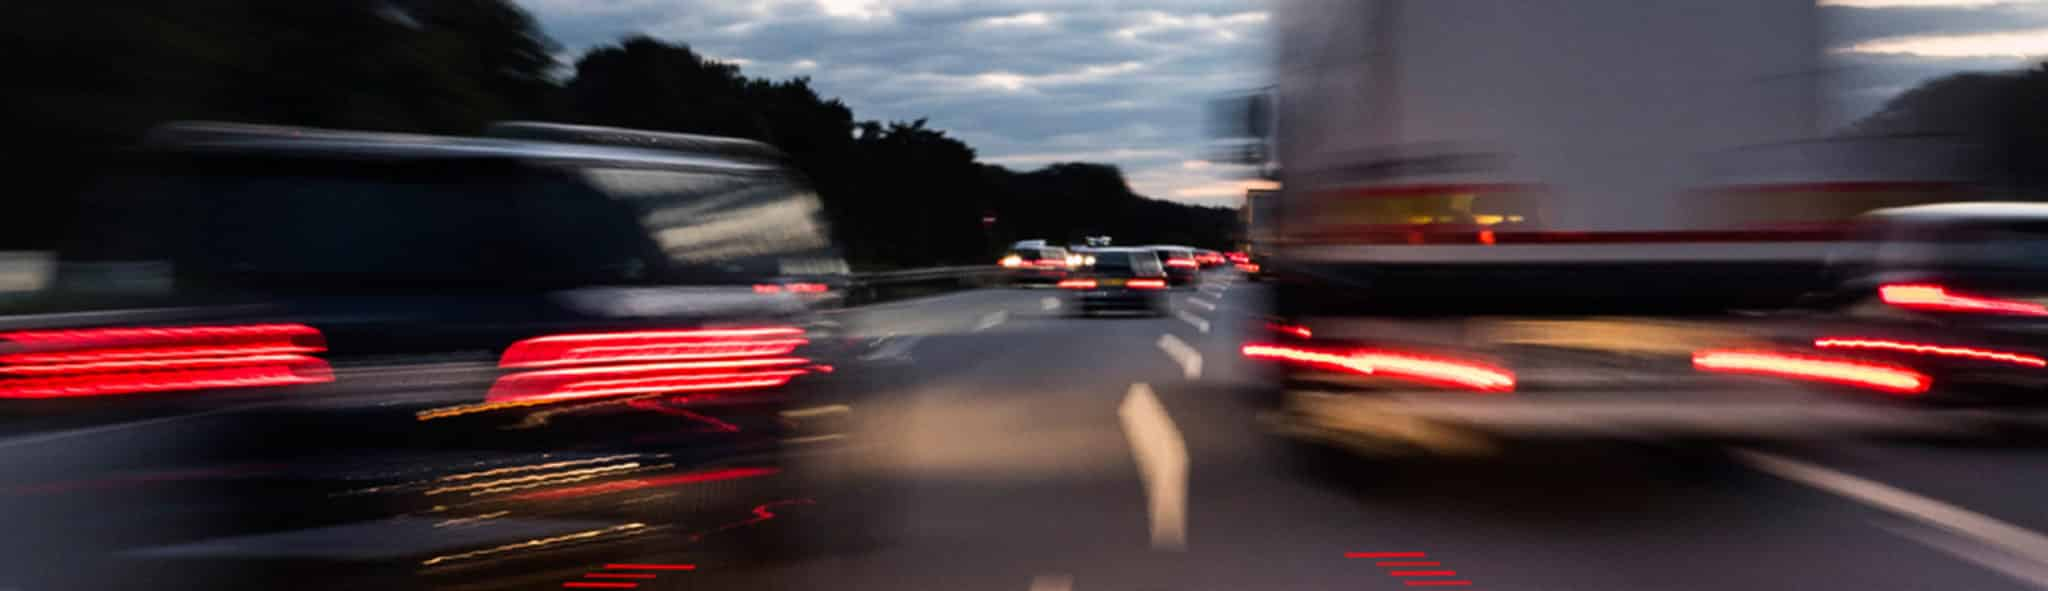 Howie, Sacks & Henry LLP – Personal Injury Law – Truck Accidents